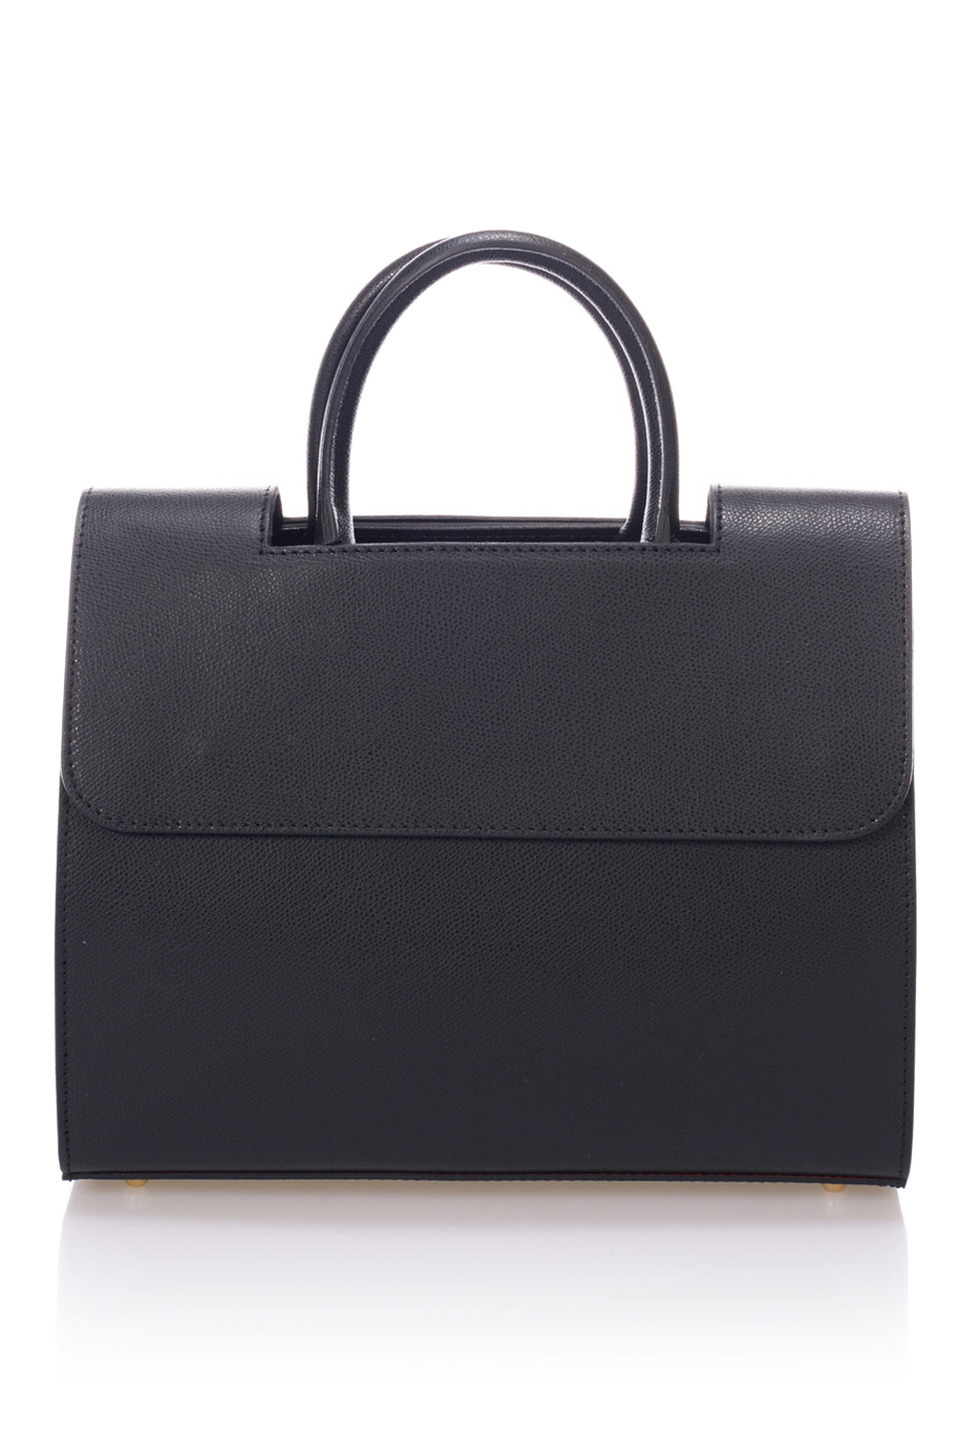 Iris Top Handle Bag in Black